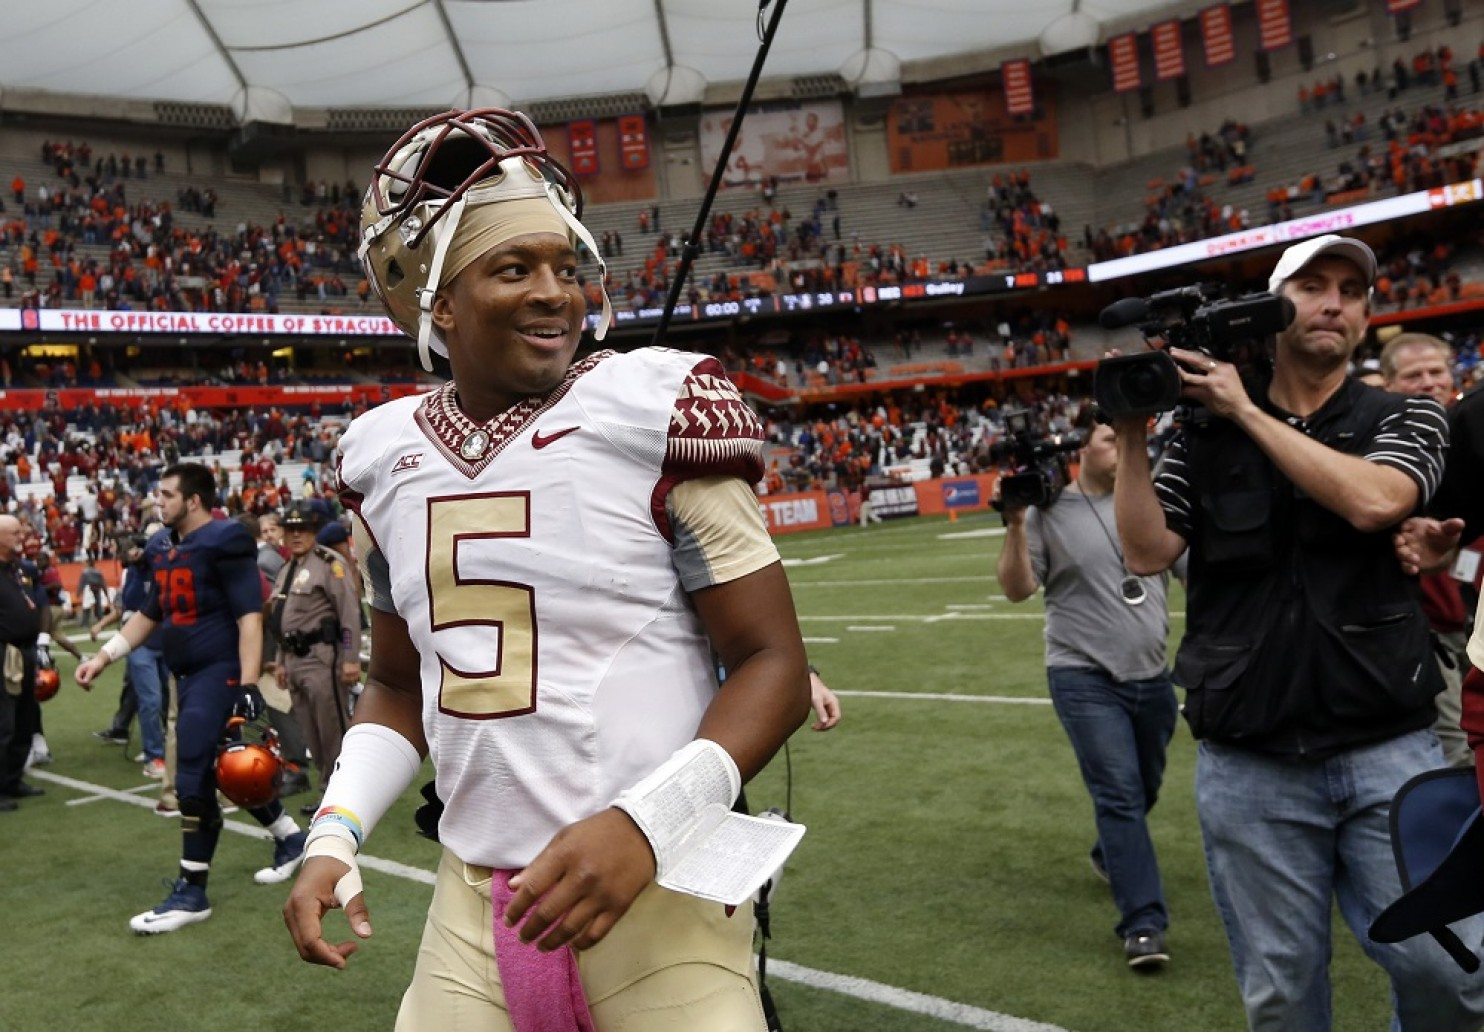 No matter what the critics say about Jameis, one thing they can't say is he can't pay quarterback. I don't understand why the media hates him, Yes he makes bad decisions but we all made bad decisions at the age of 19-20. And it is completely not fair to discredit his on-the-field success because of his off-the-field issues. (AP Photo)